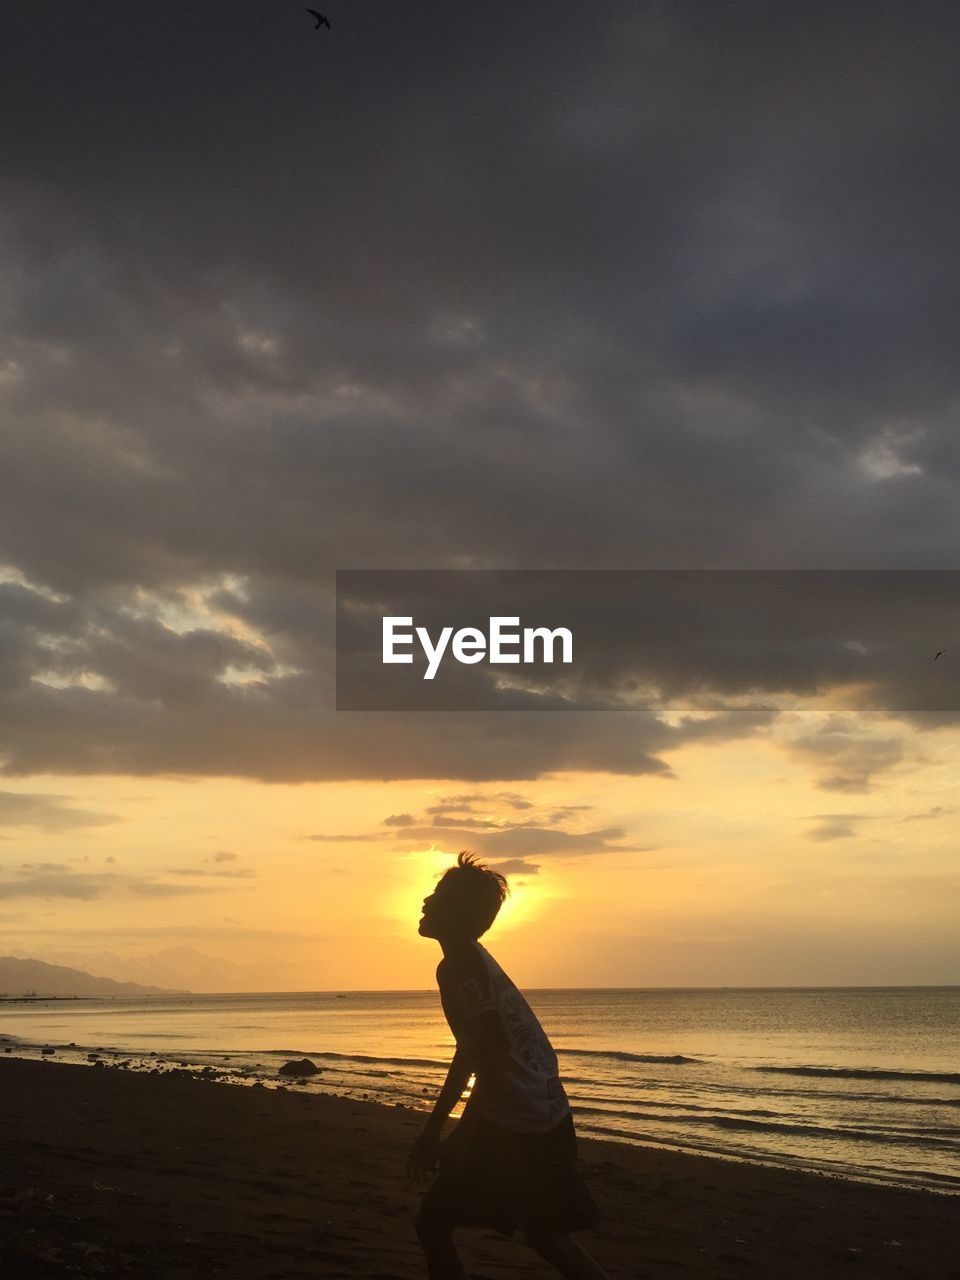 sky, sunset, cloud - sky, sea, water, beauty in nature, one person, land, scenics - nature, horizon over water, horizon, beach, real people, leisure activity, nature, tranquility, lifestyles, orange color, side view, outdoors, contemplation, looking at view, profile view